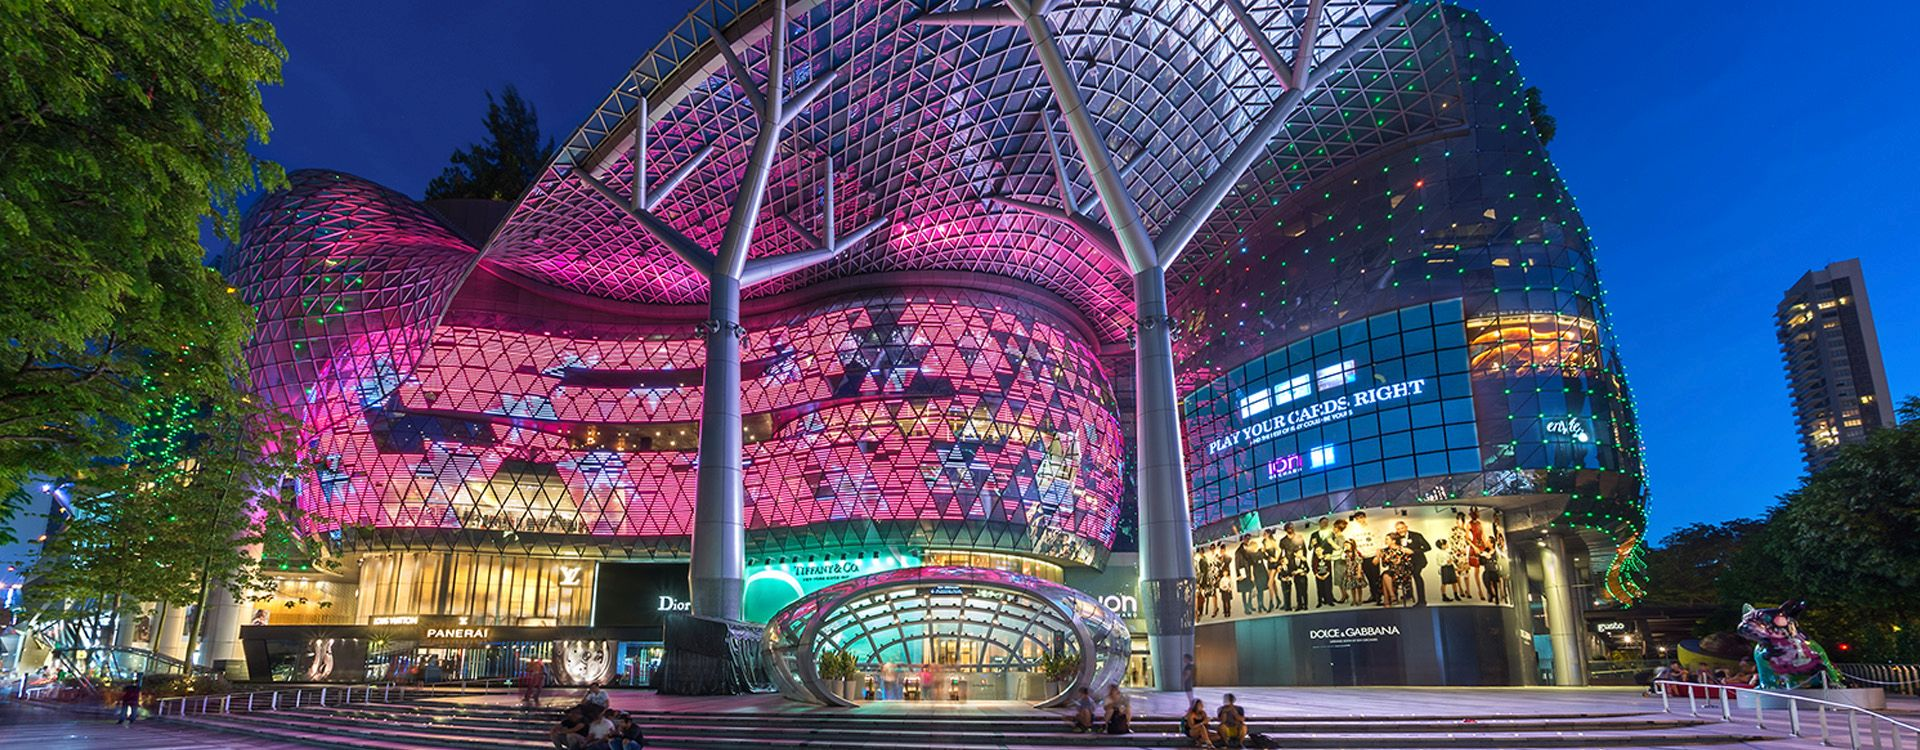 Orchard Residences and ION Orchard, Singapore | WSP